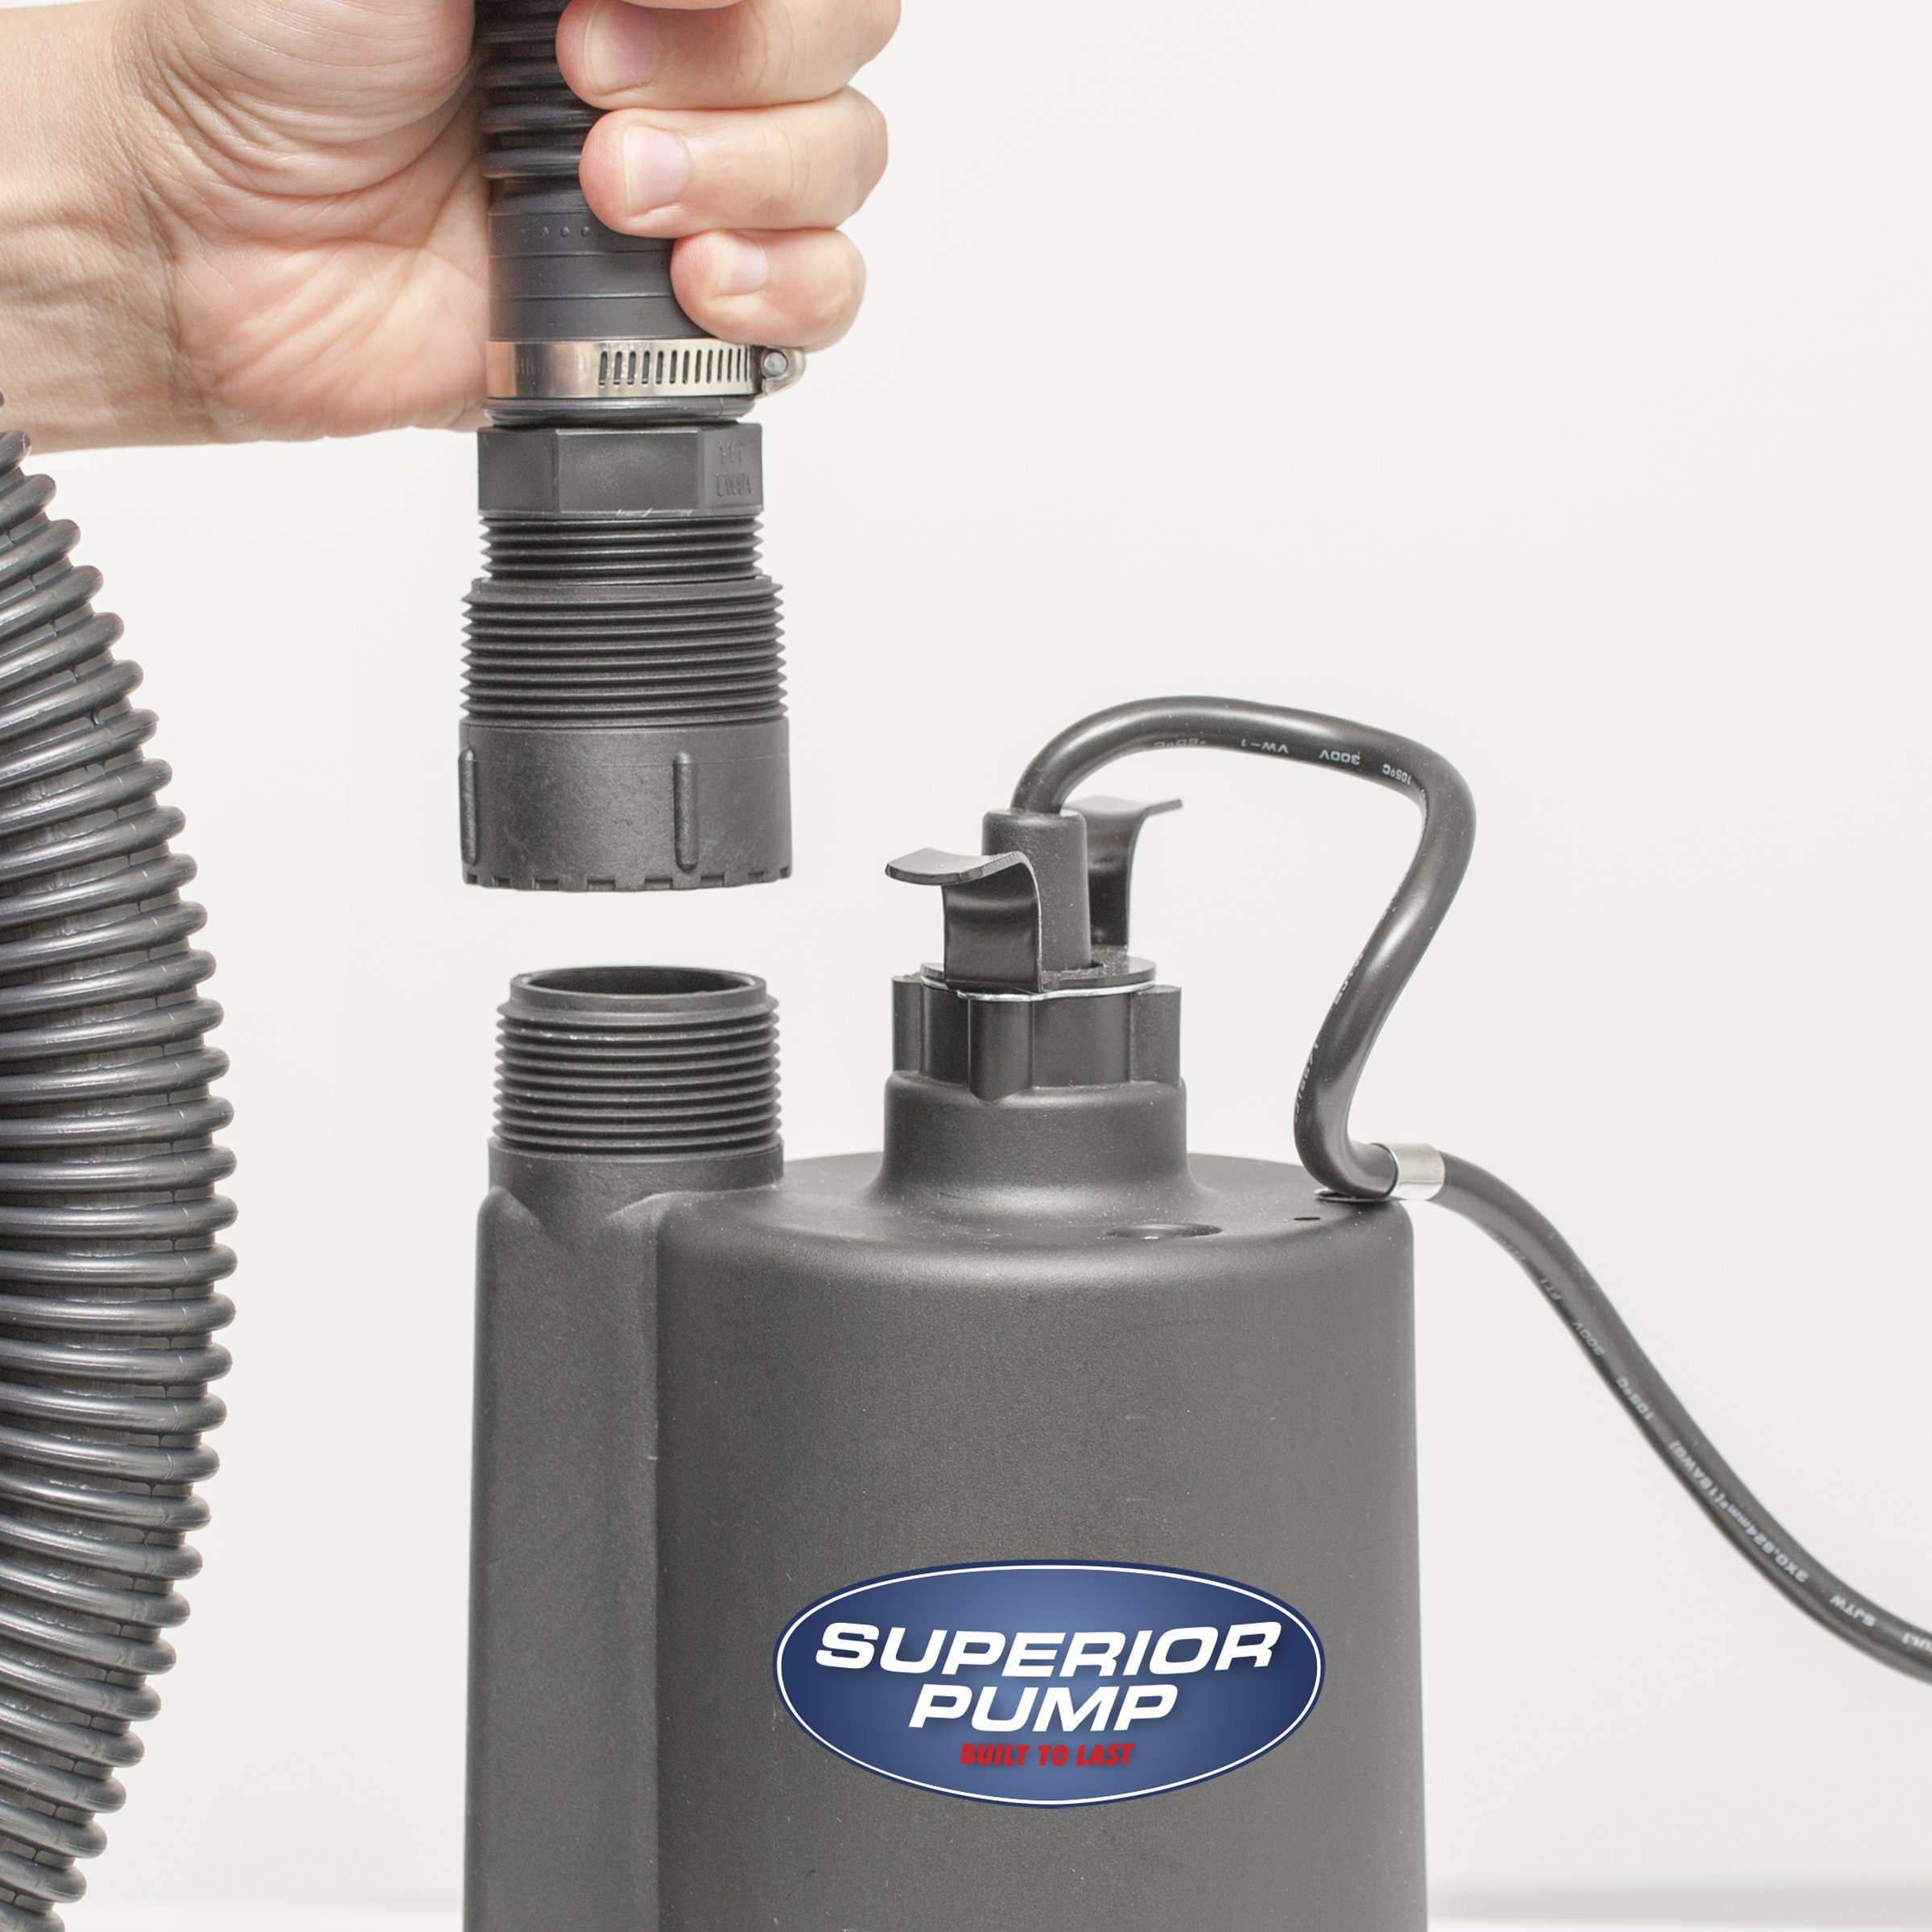 Superior Pump 91025 1/5 HP Thermoplastic Submersible Utility Pump with 10-Foot Cord by Superior Pump (Image #3)